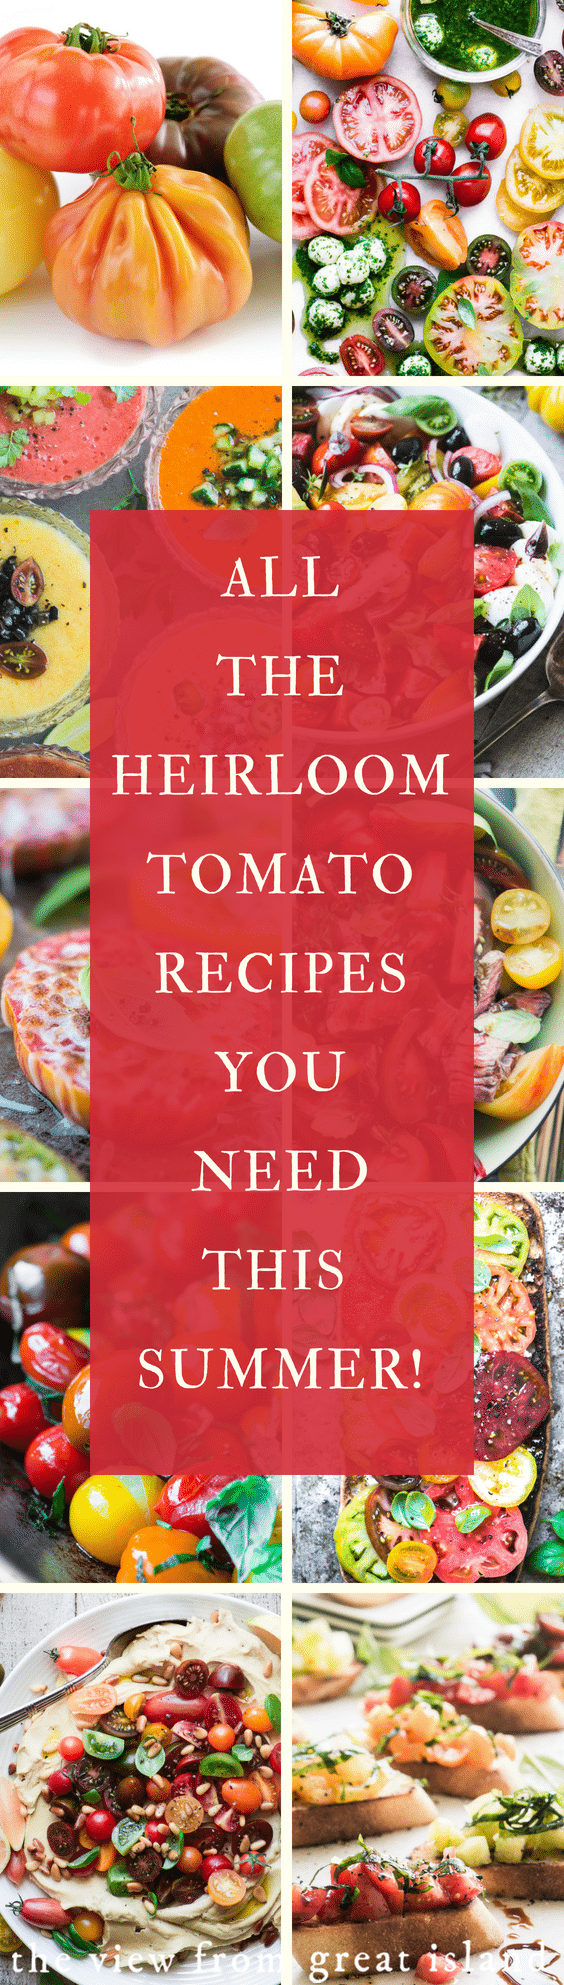 Heirloom Tomatoes ~ everything you need to know about how to find and use these gorgeous tomatoes, plus lots of recipes to get you started. #tomatoes #healthy #heirloom #salad #soup #gazpacho #bruschetta #grilled #sauce #crostini #toast #pasta